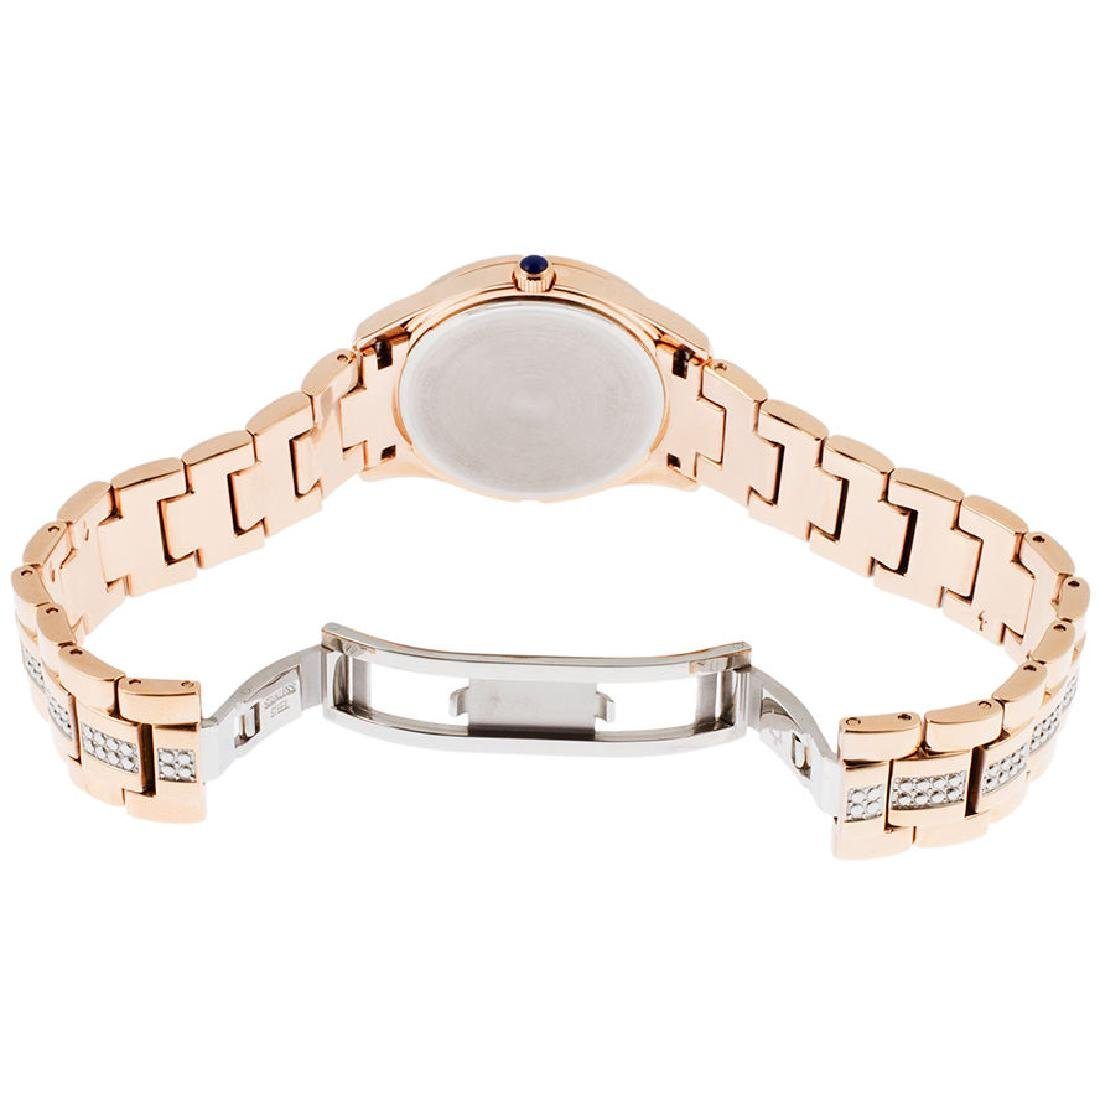 Bulova Lady's Mother of Pearl Watch - 4